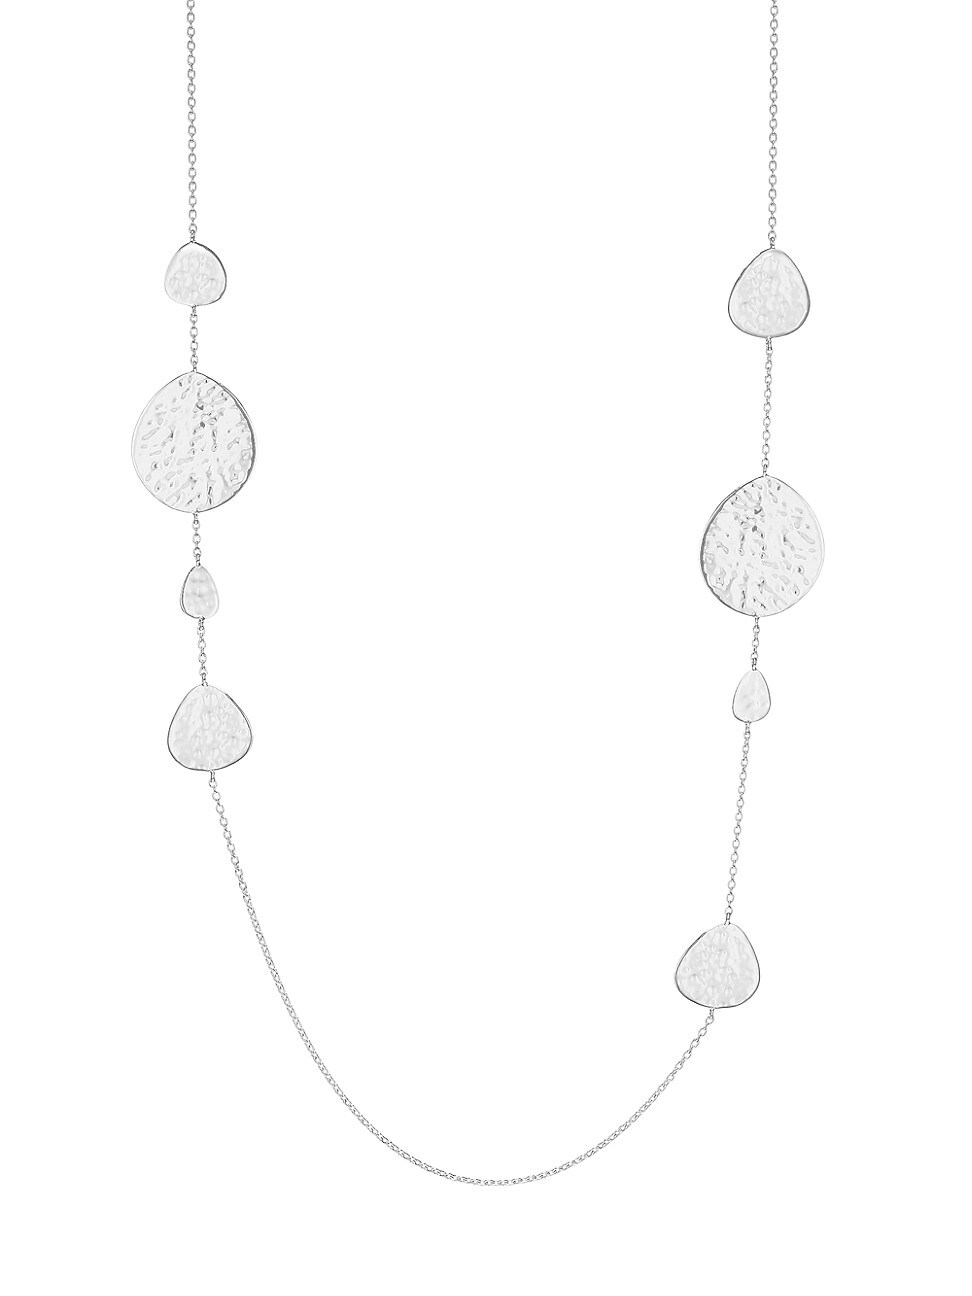 Ippolita WOMEN'S CLASSICO STERLING SILVER CRINKLE NOMAD LONG STATION NECKLACE